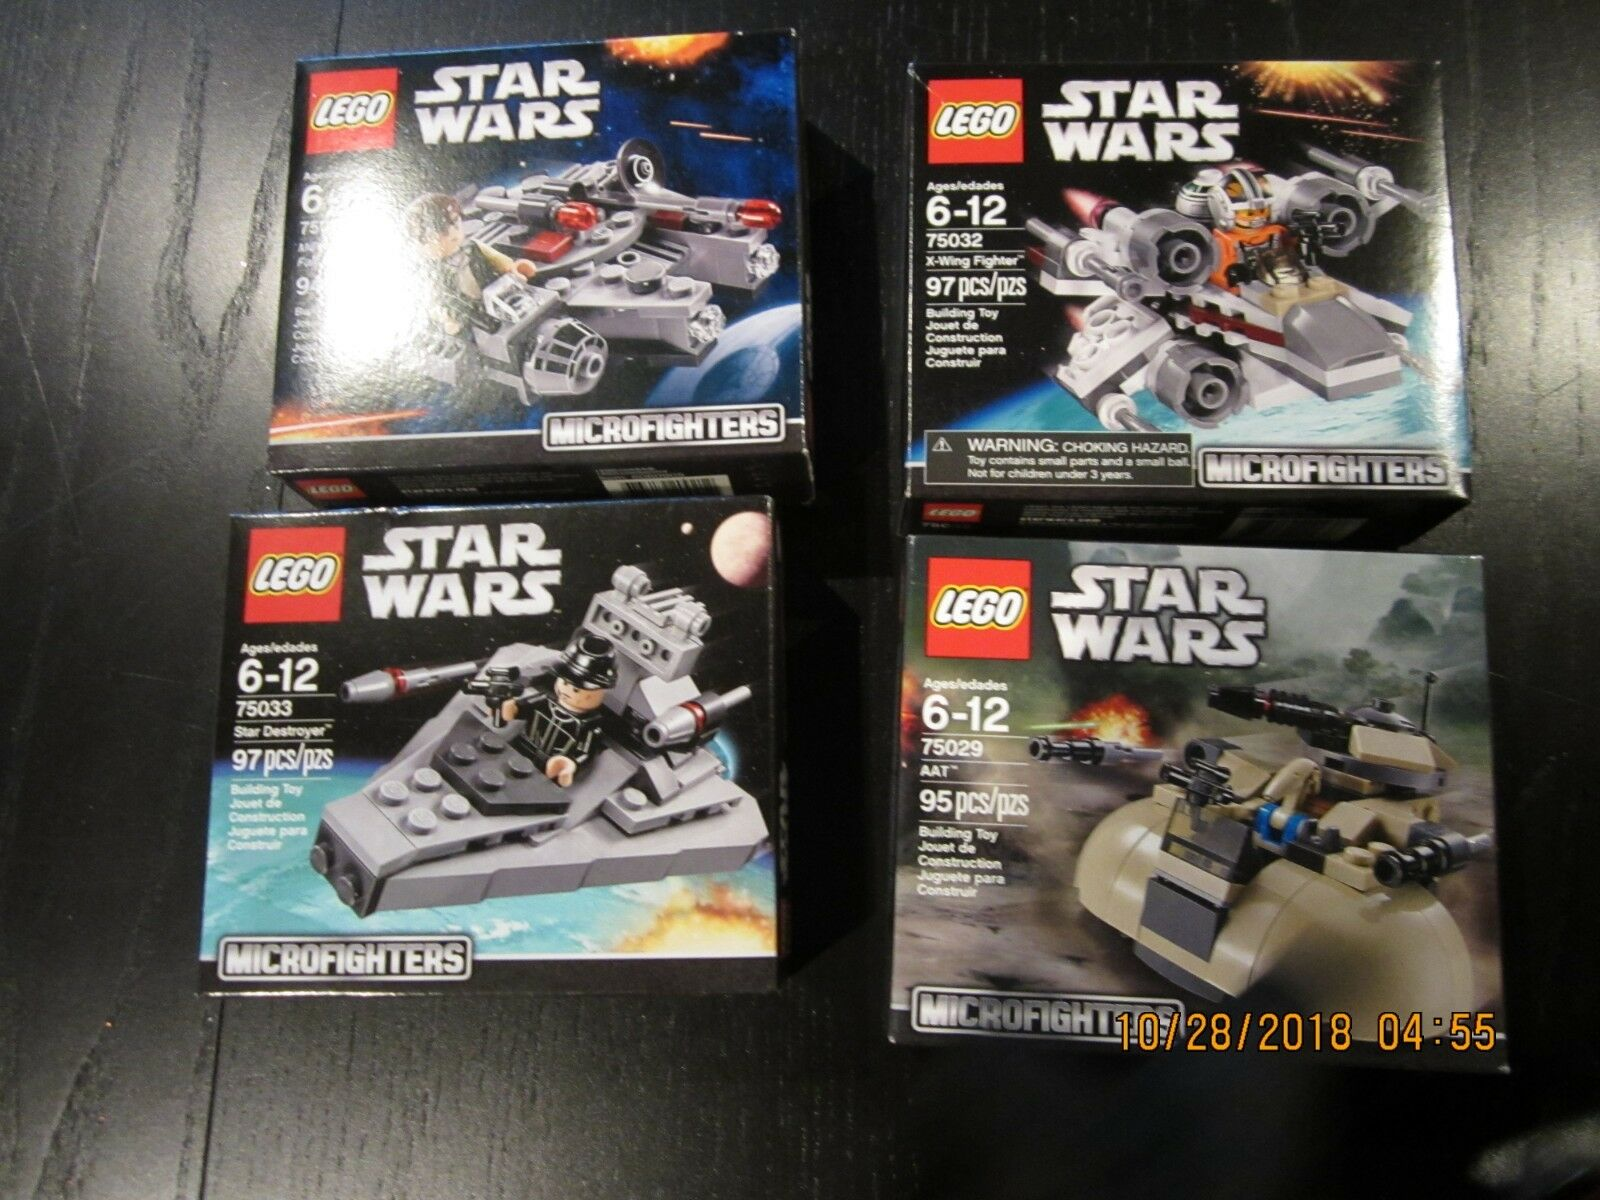 Lego Star Wars Microfighters Micro Fighters Fighters Fighters New in Box 75029 75032 75030 75033 06cc3e